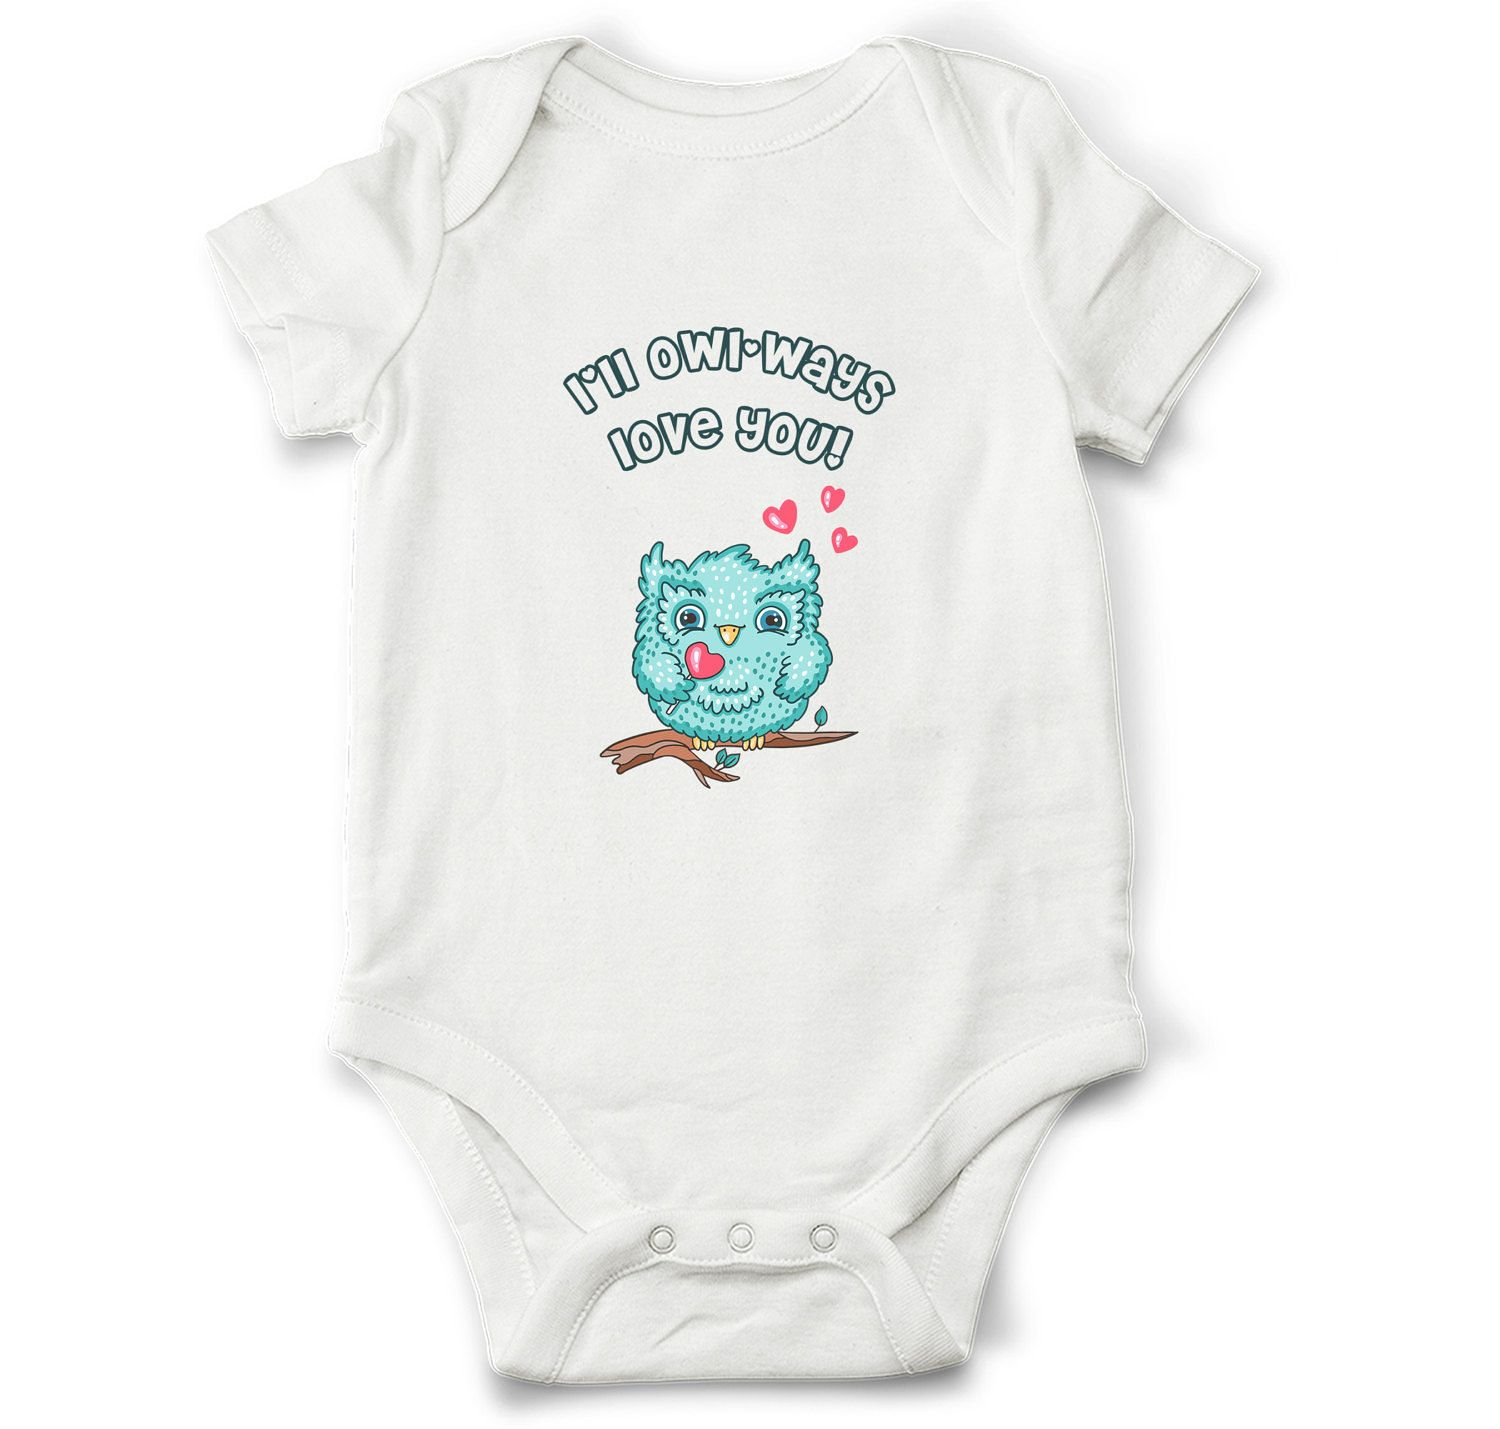 Love Baby Bodysuit, Owl Baby Bodysuit, Cute Baby Clothes, Baby